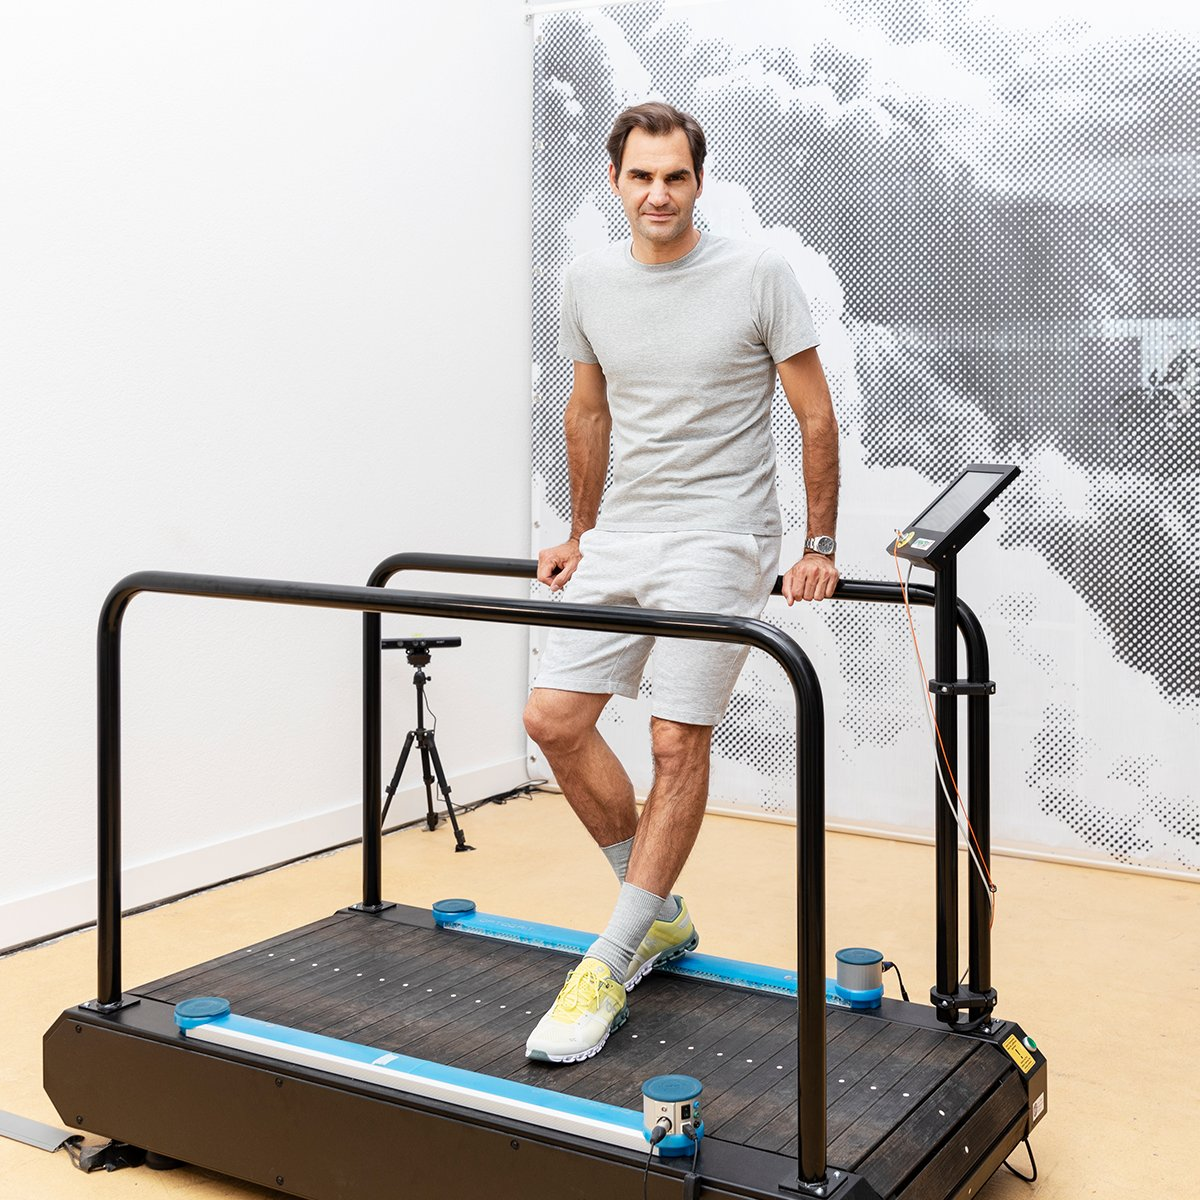 Tomorrow, July 6, @rogerfederer goes live like never before. Expect an epic interactive experience, surprises and special guests. Plus, find out what Roger's been working on in the On Lab. Don't miss it https://t.co/NN0AIms81v https://t.co/hEtgXCxenj